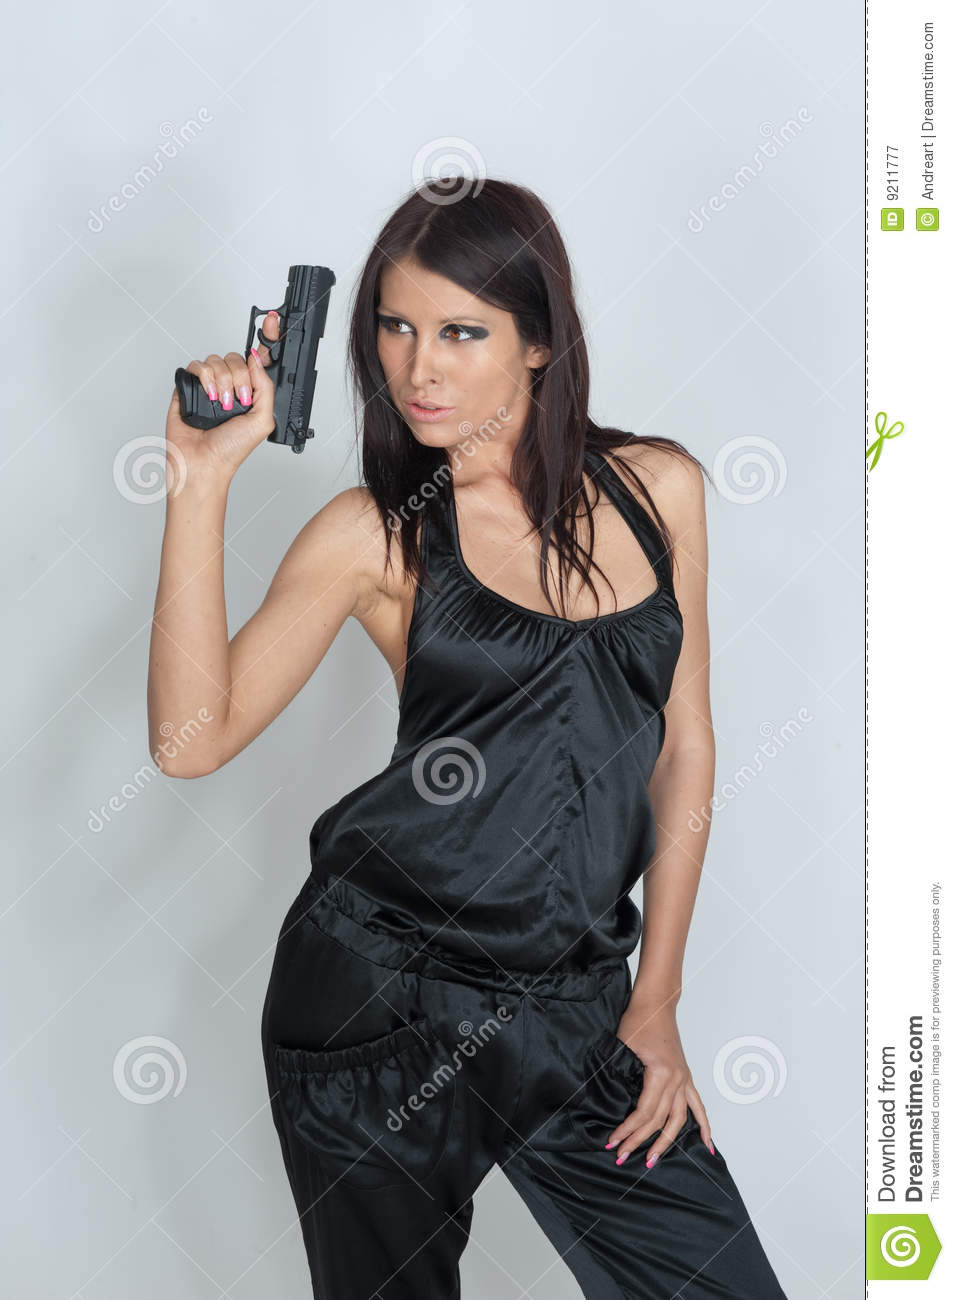 Woman holding gun stock image. Image of pistol, pointing ...